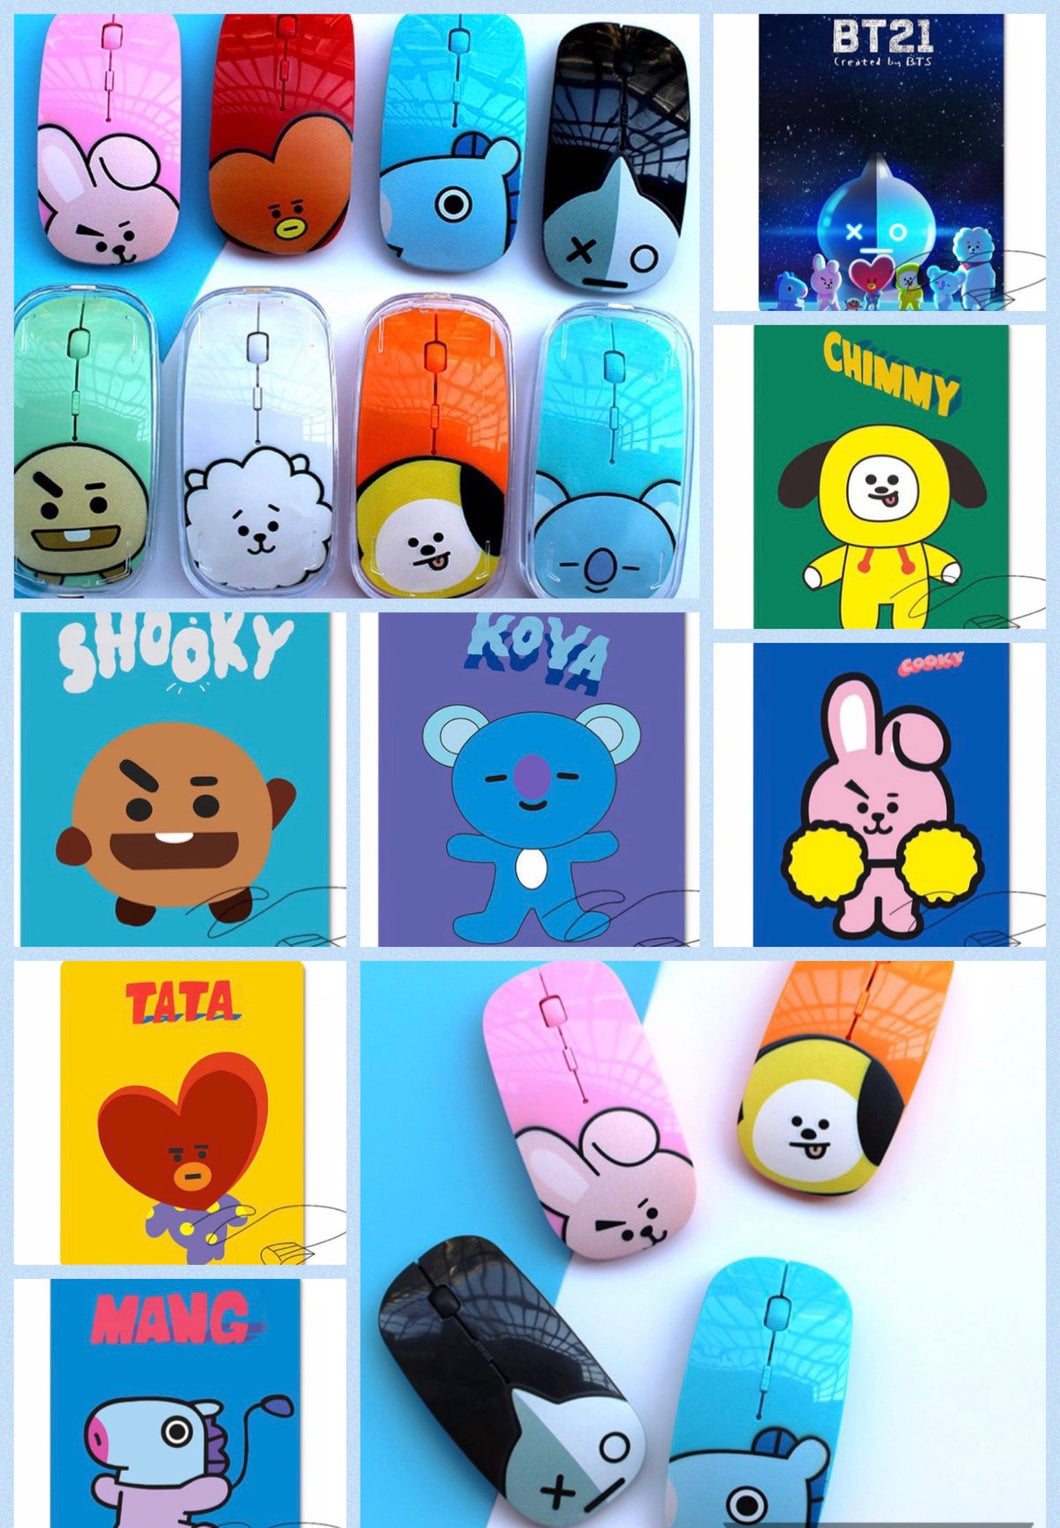 PROMO! BT21 wireless mouse and mouse pad.